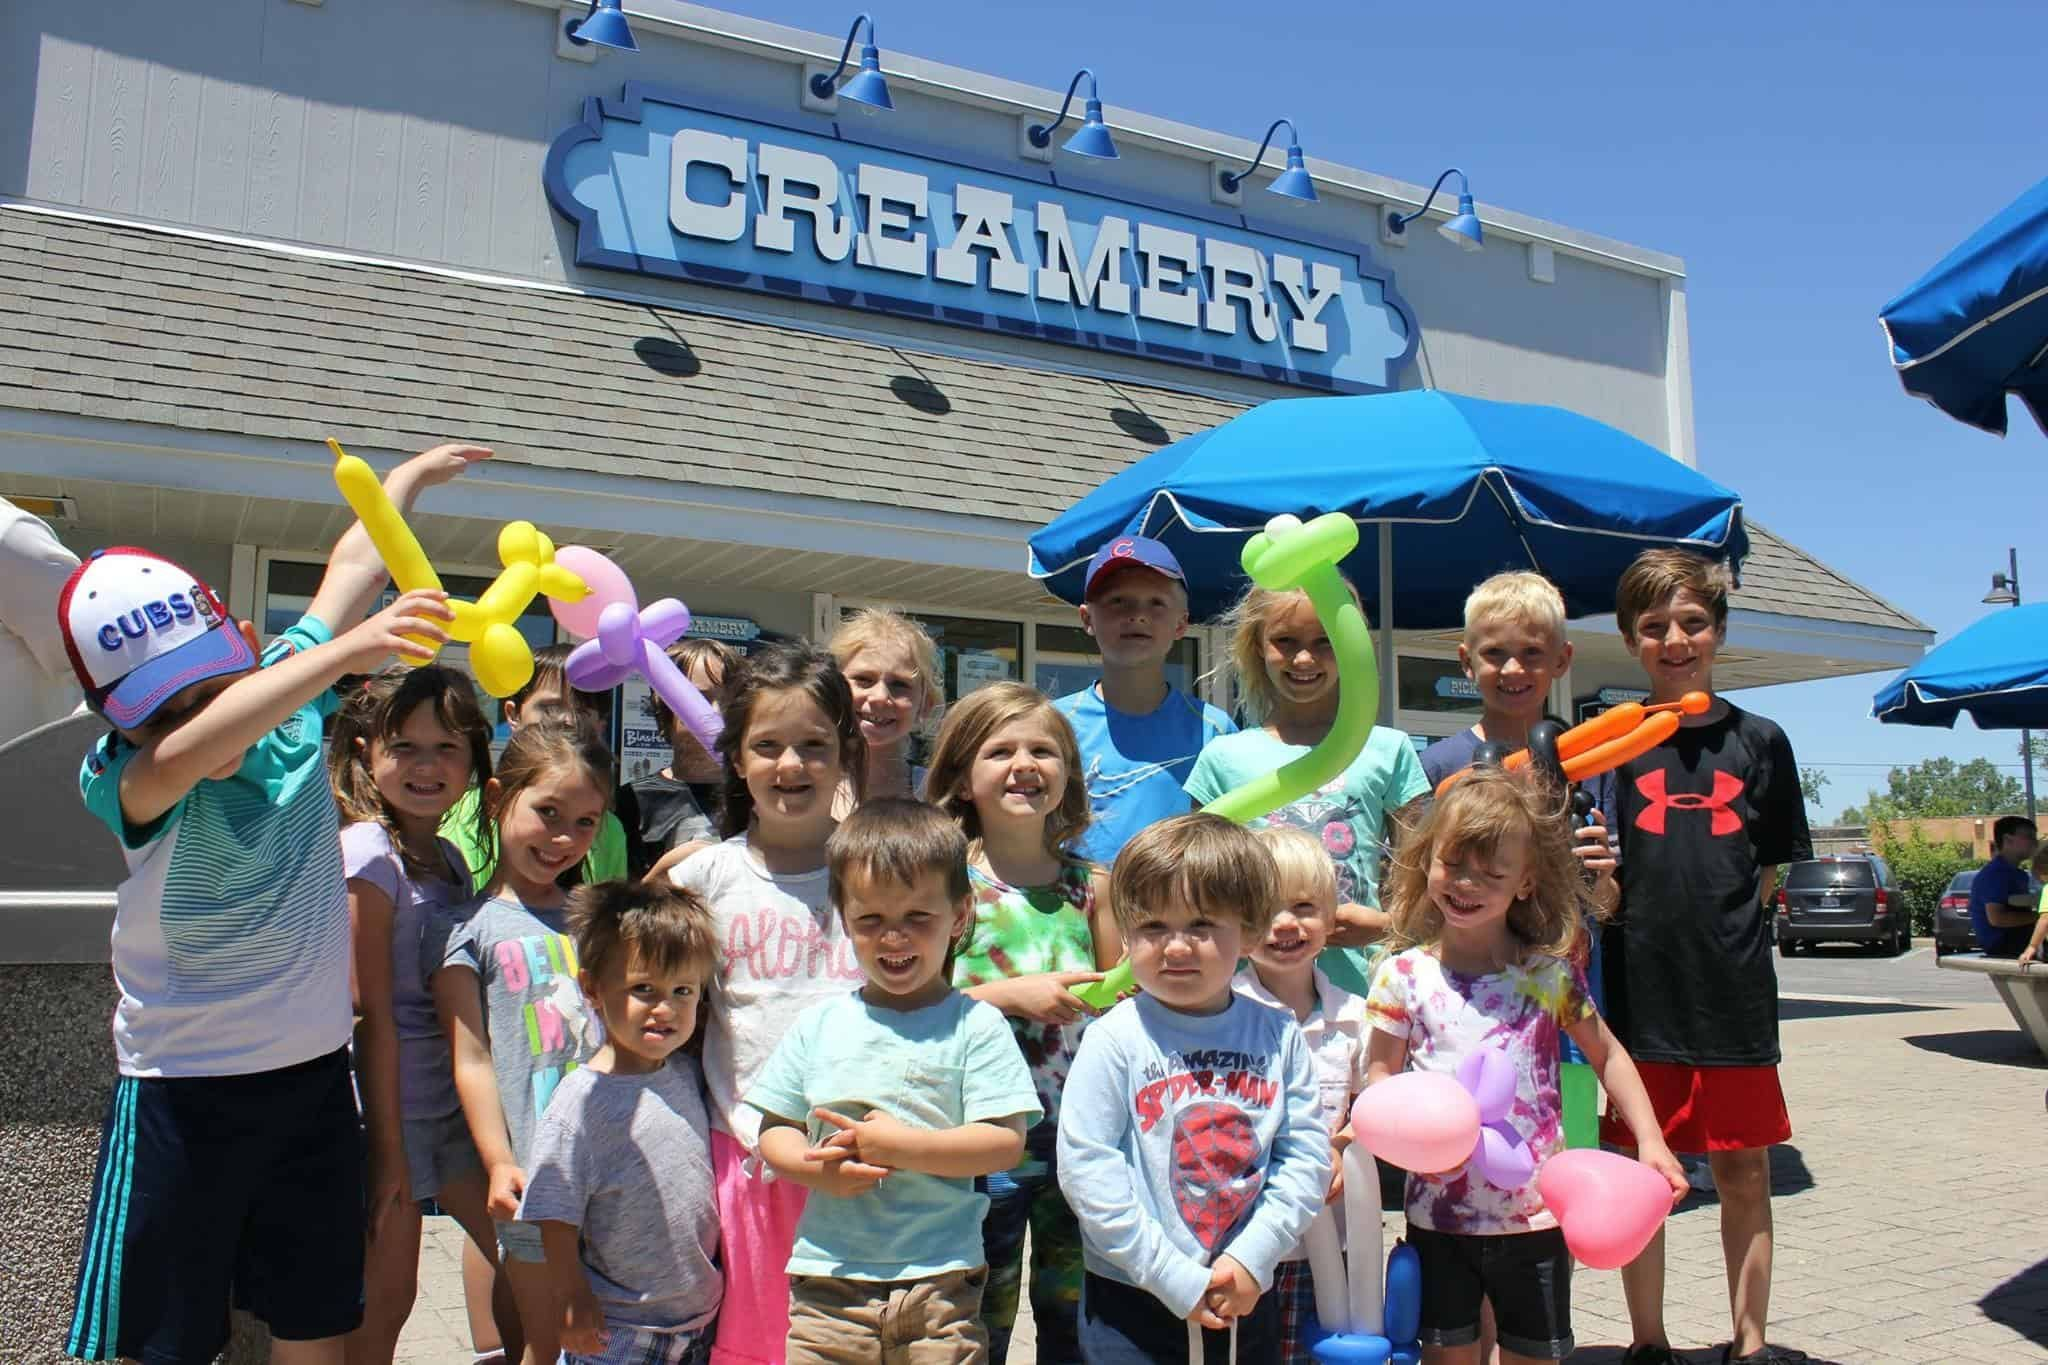 3 Family Friendly Fun Places For Kids In Orland Park That Parents Will Love Too Fun Places For Kids Activities For Kids Kids